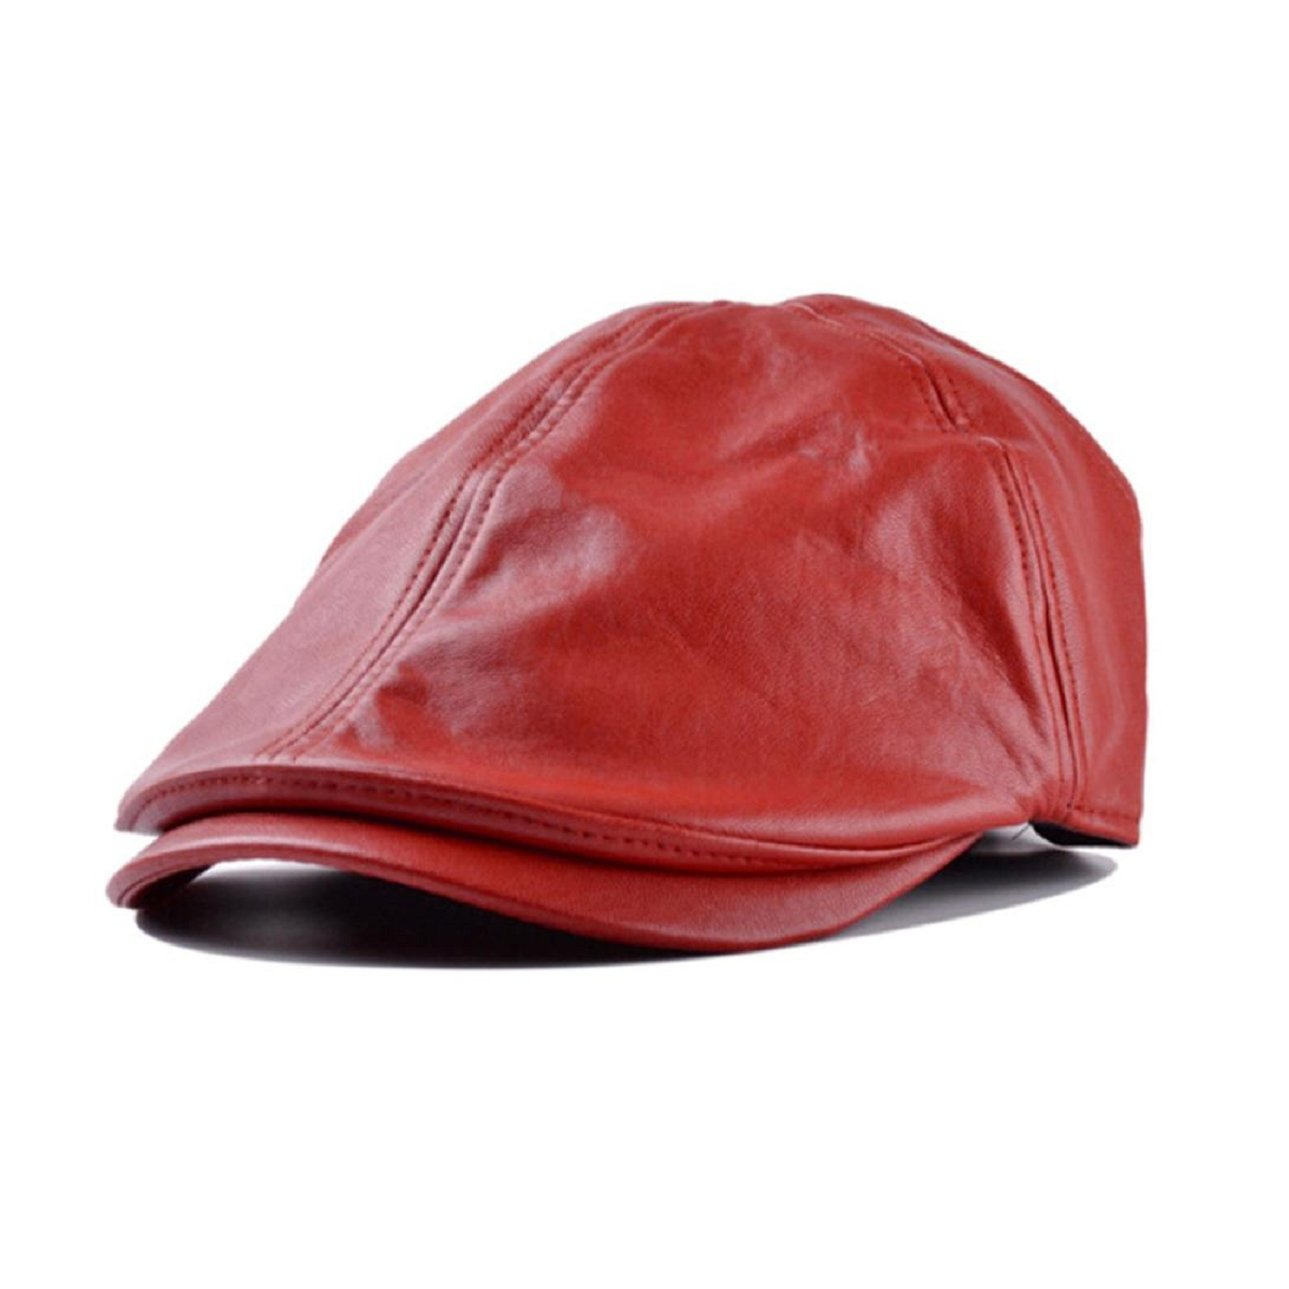 TONSEE Mens Women Vintage Leather Beret Cap Peaked Hat Newsboy Hat TONSEE_A2619